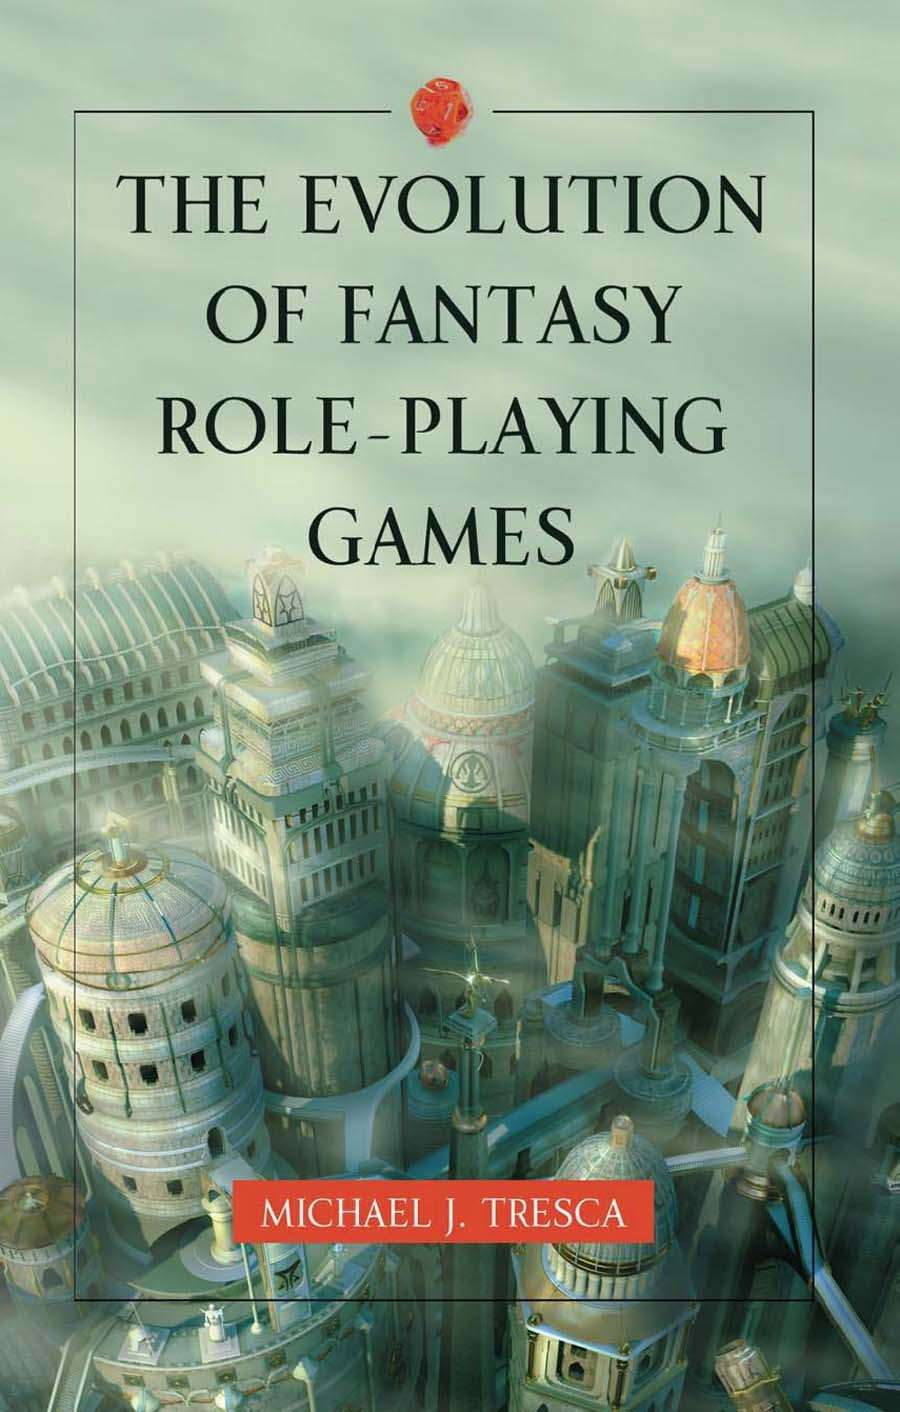 Fantasy Role-Playing Games